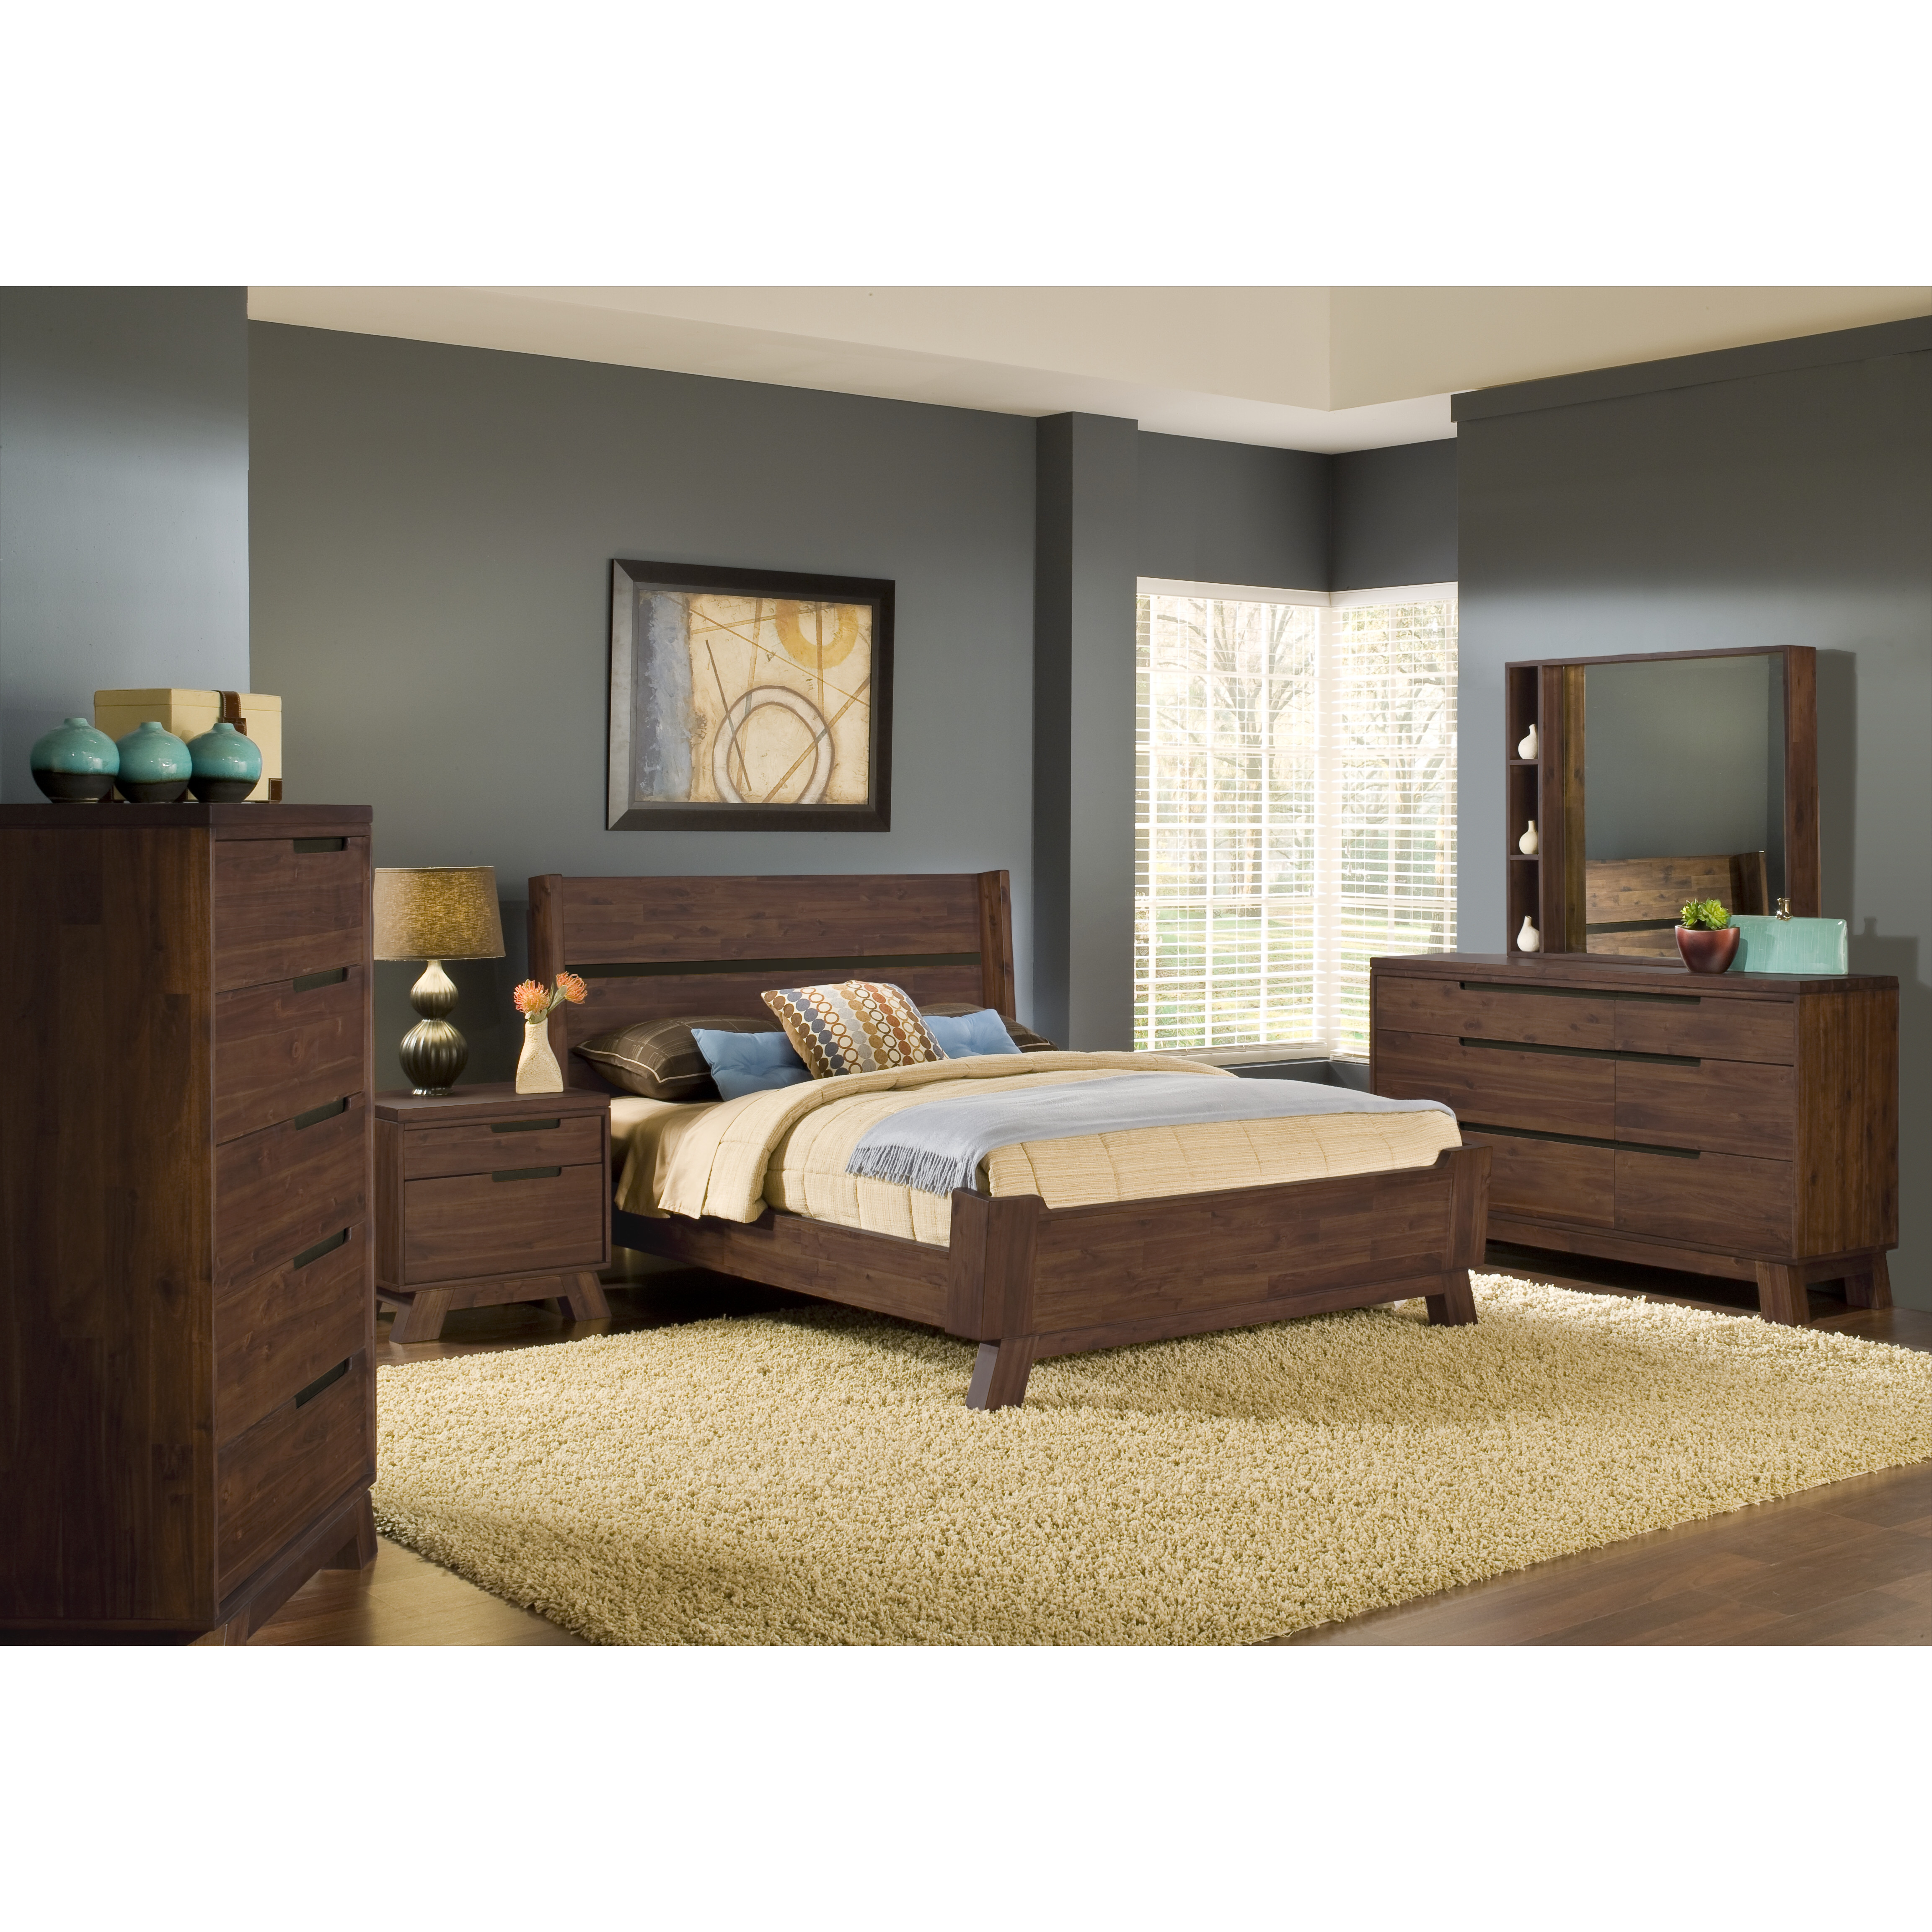 Modus Portland Bedroom Collection | Broadway Furniture